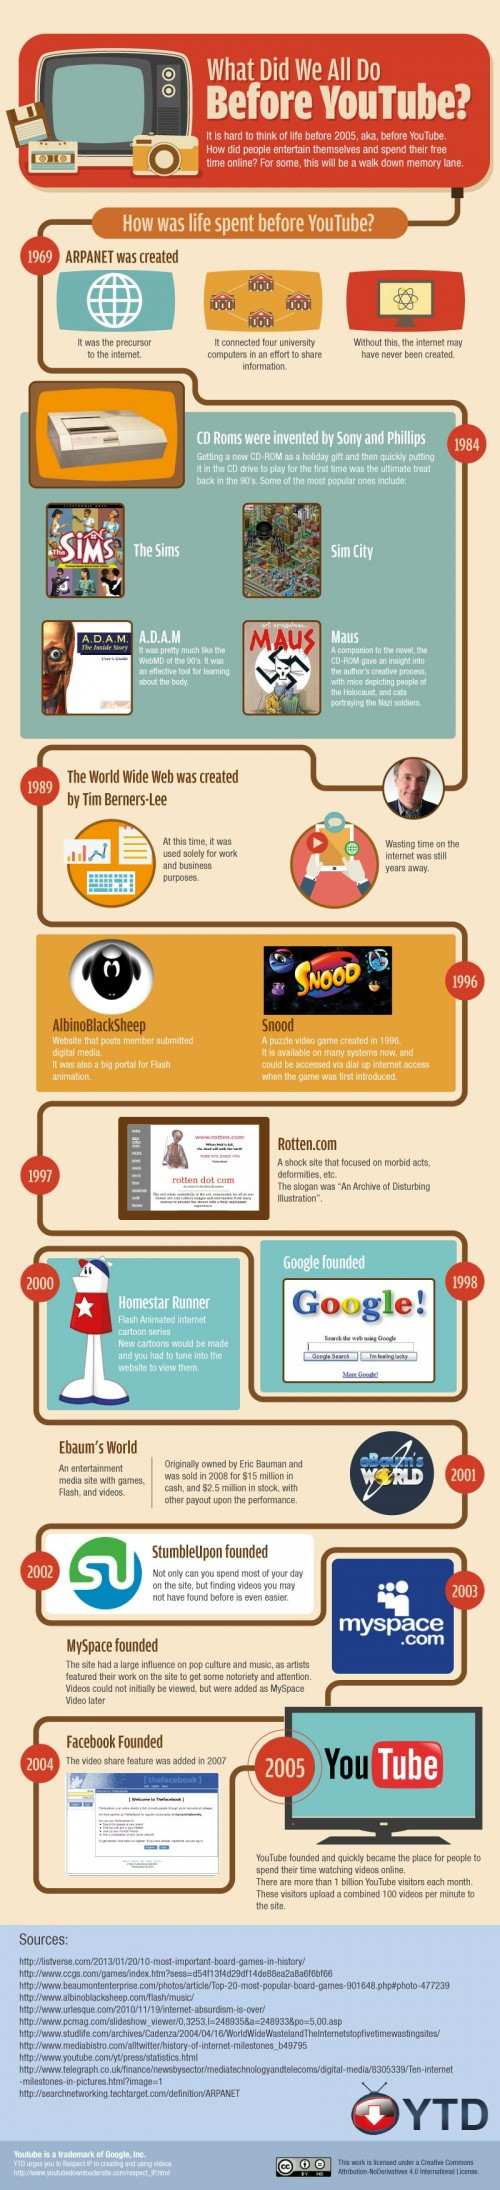 What did we all do before YouTube? Infographic by YTD for ViralBlog.com